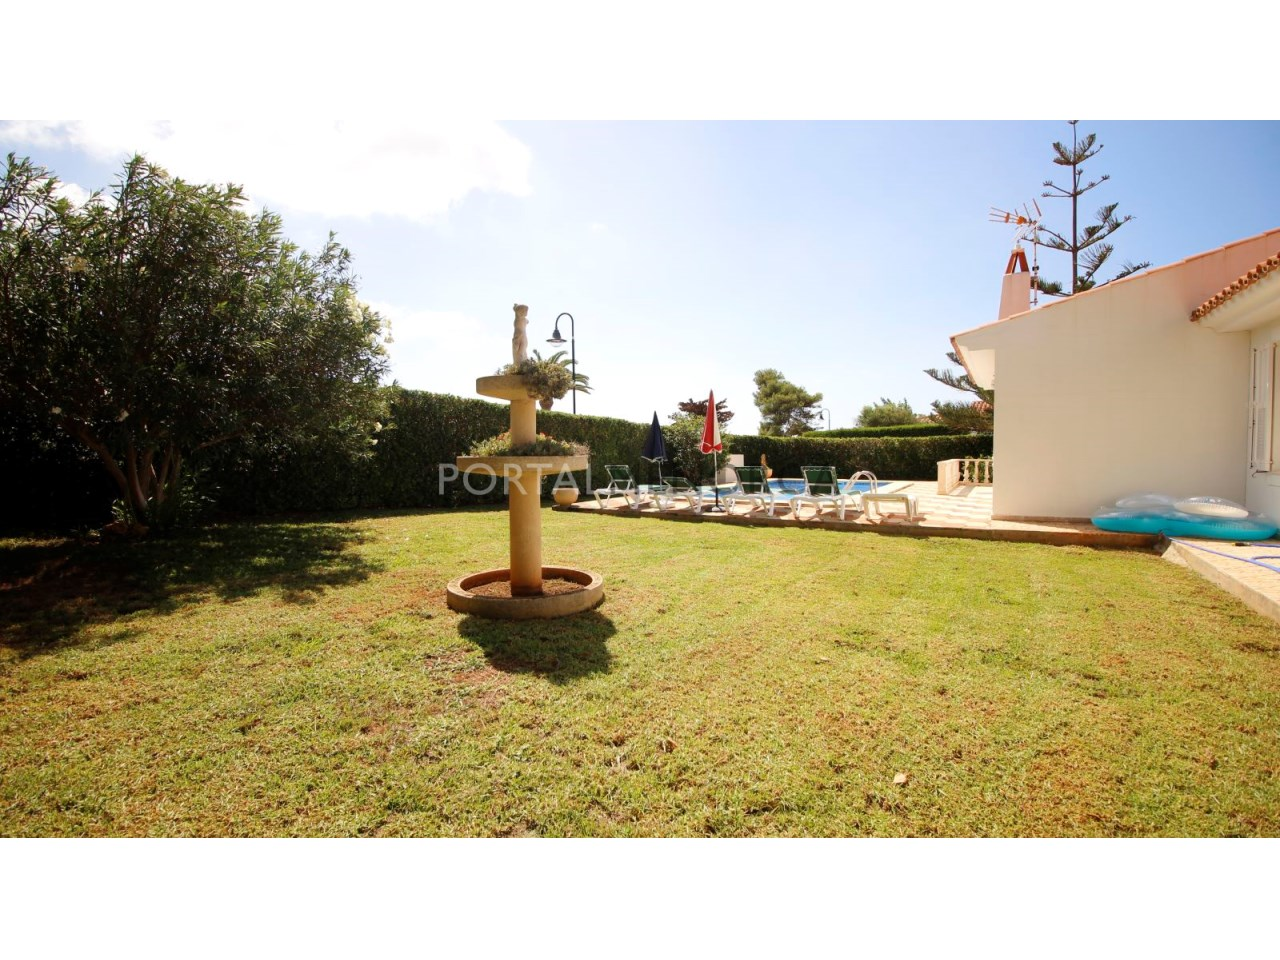 House by the beach for sale in Binibeca